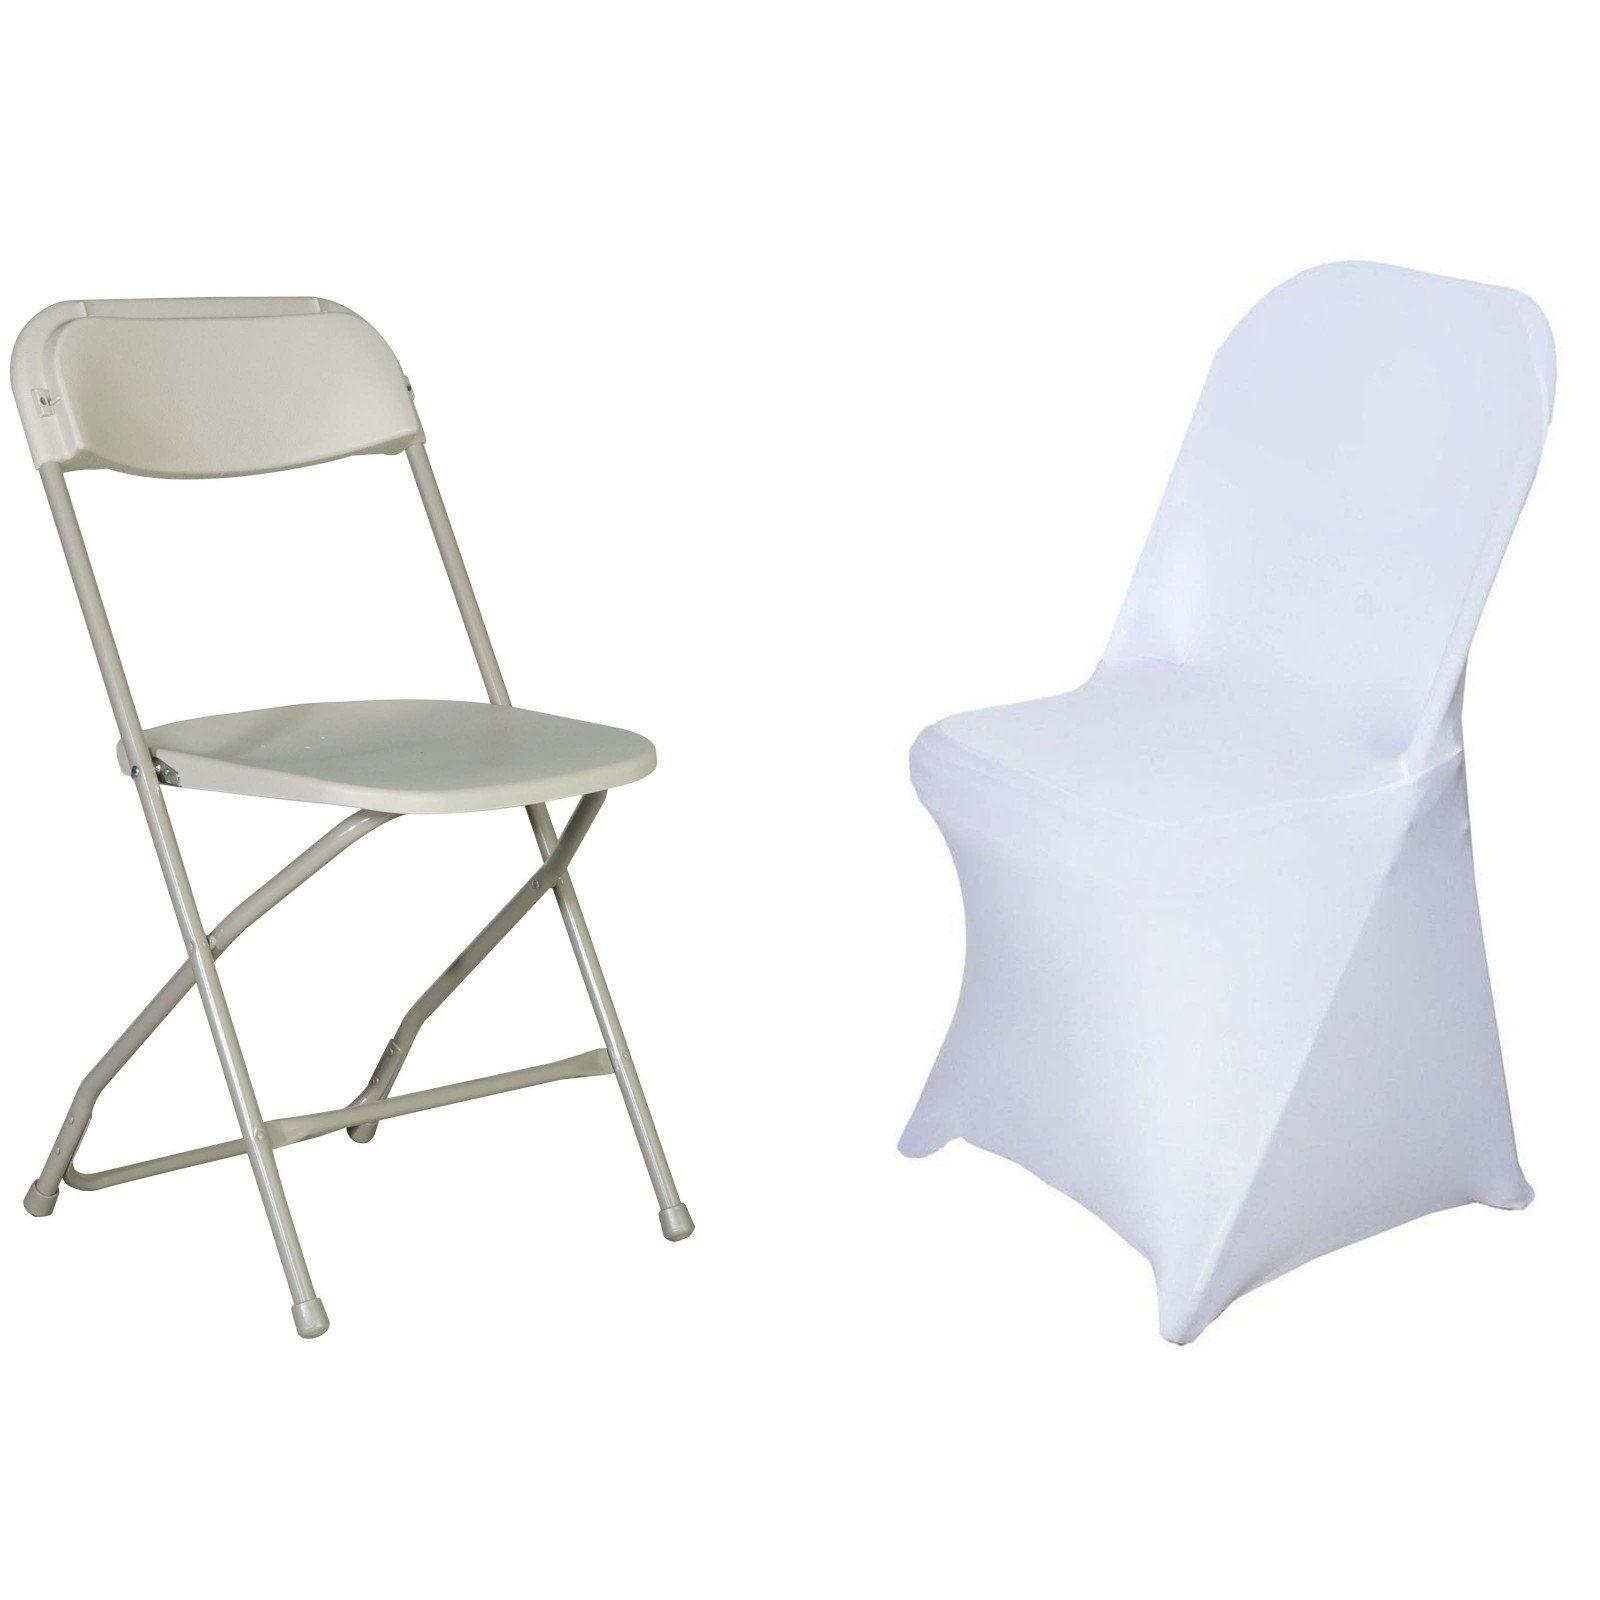 Cool 2 Pcs Lifetime Spandex Stretch Fitted Folding Chair Covers Gmtry Best Dining Table And Chair Ideas Images Gmtryco